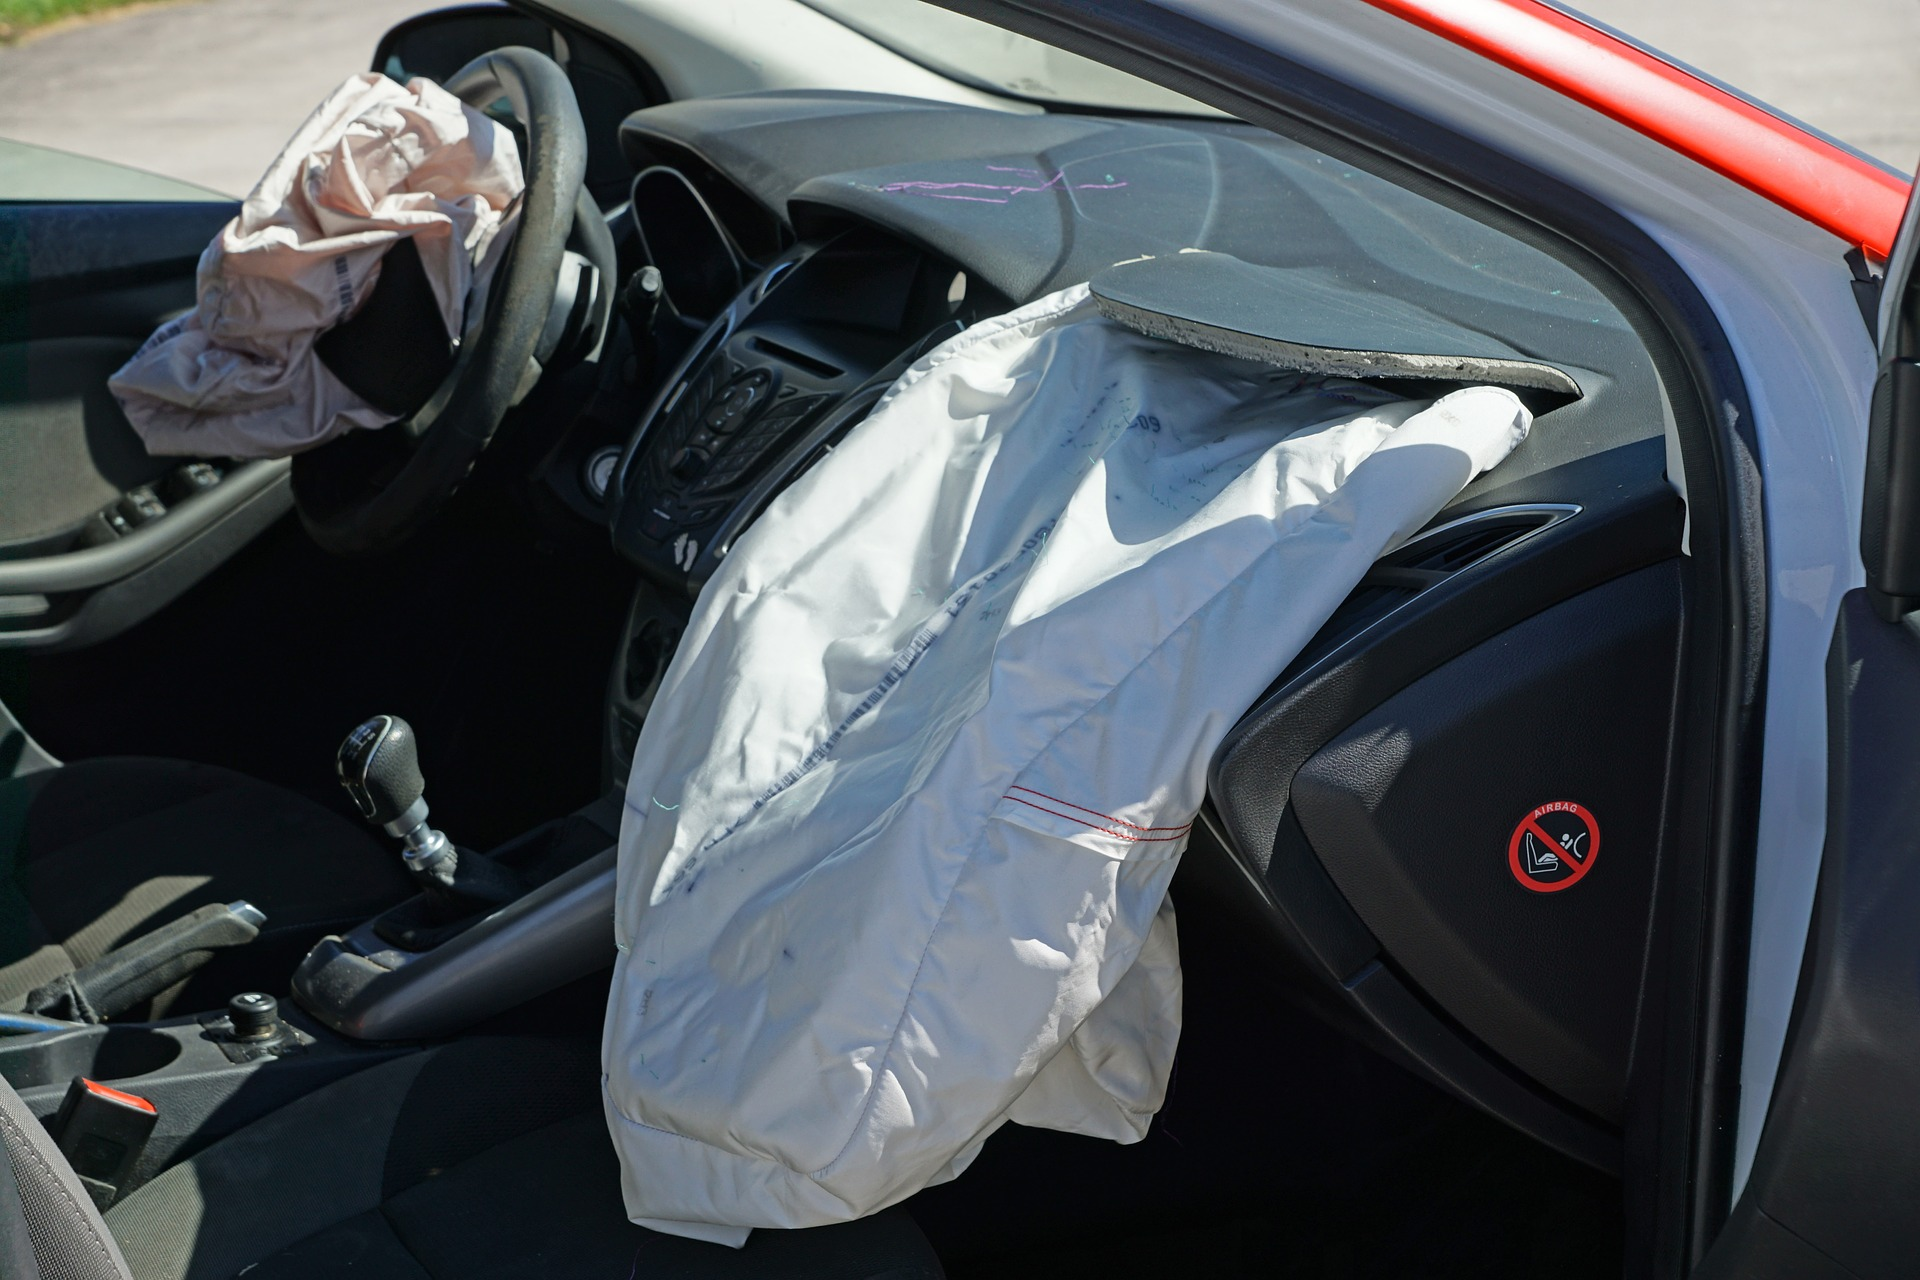 The dashboard of a car, both of the front airbags have deployed